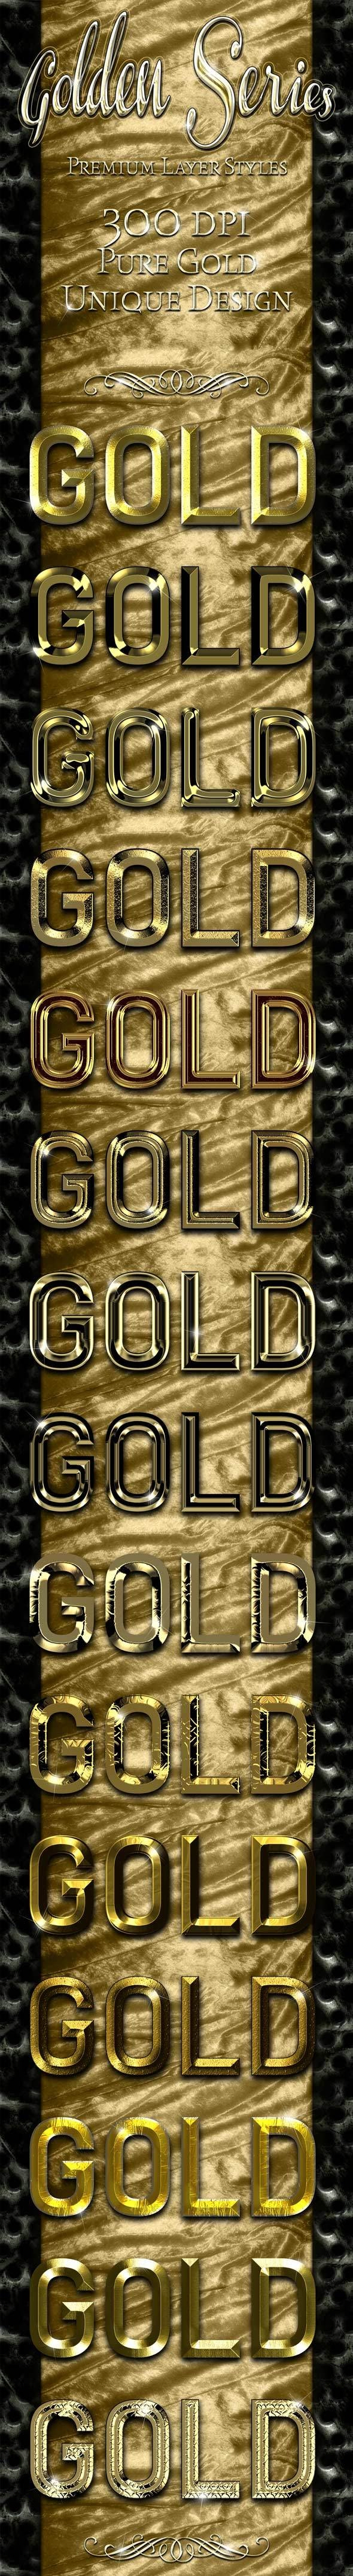 Golden Series - Premium Layer Styles - Text Effects Styles